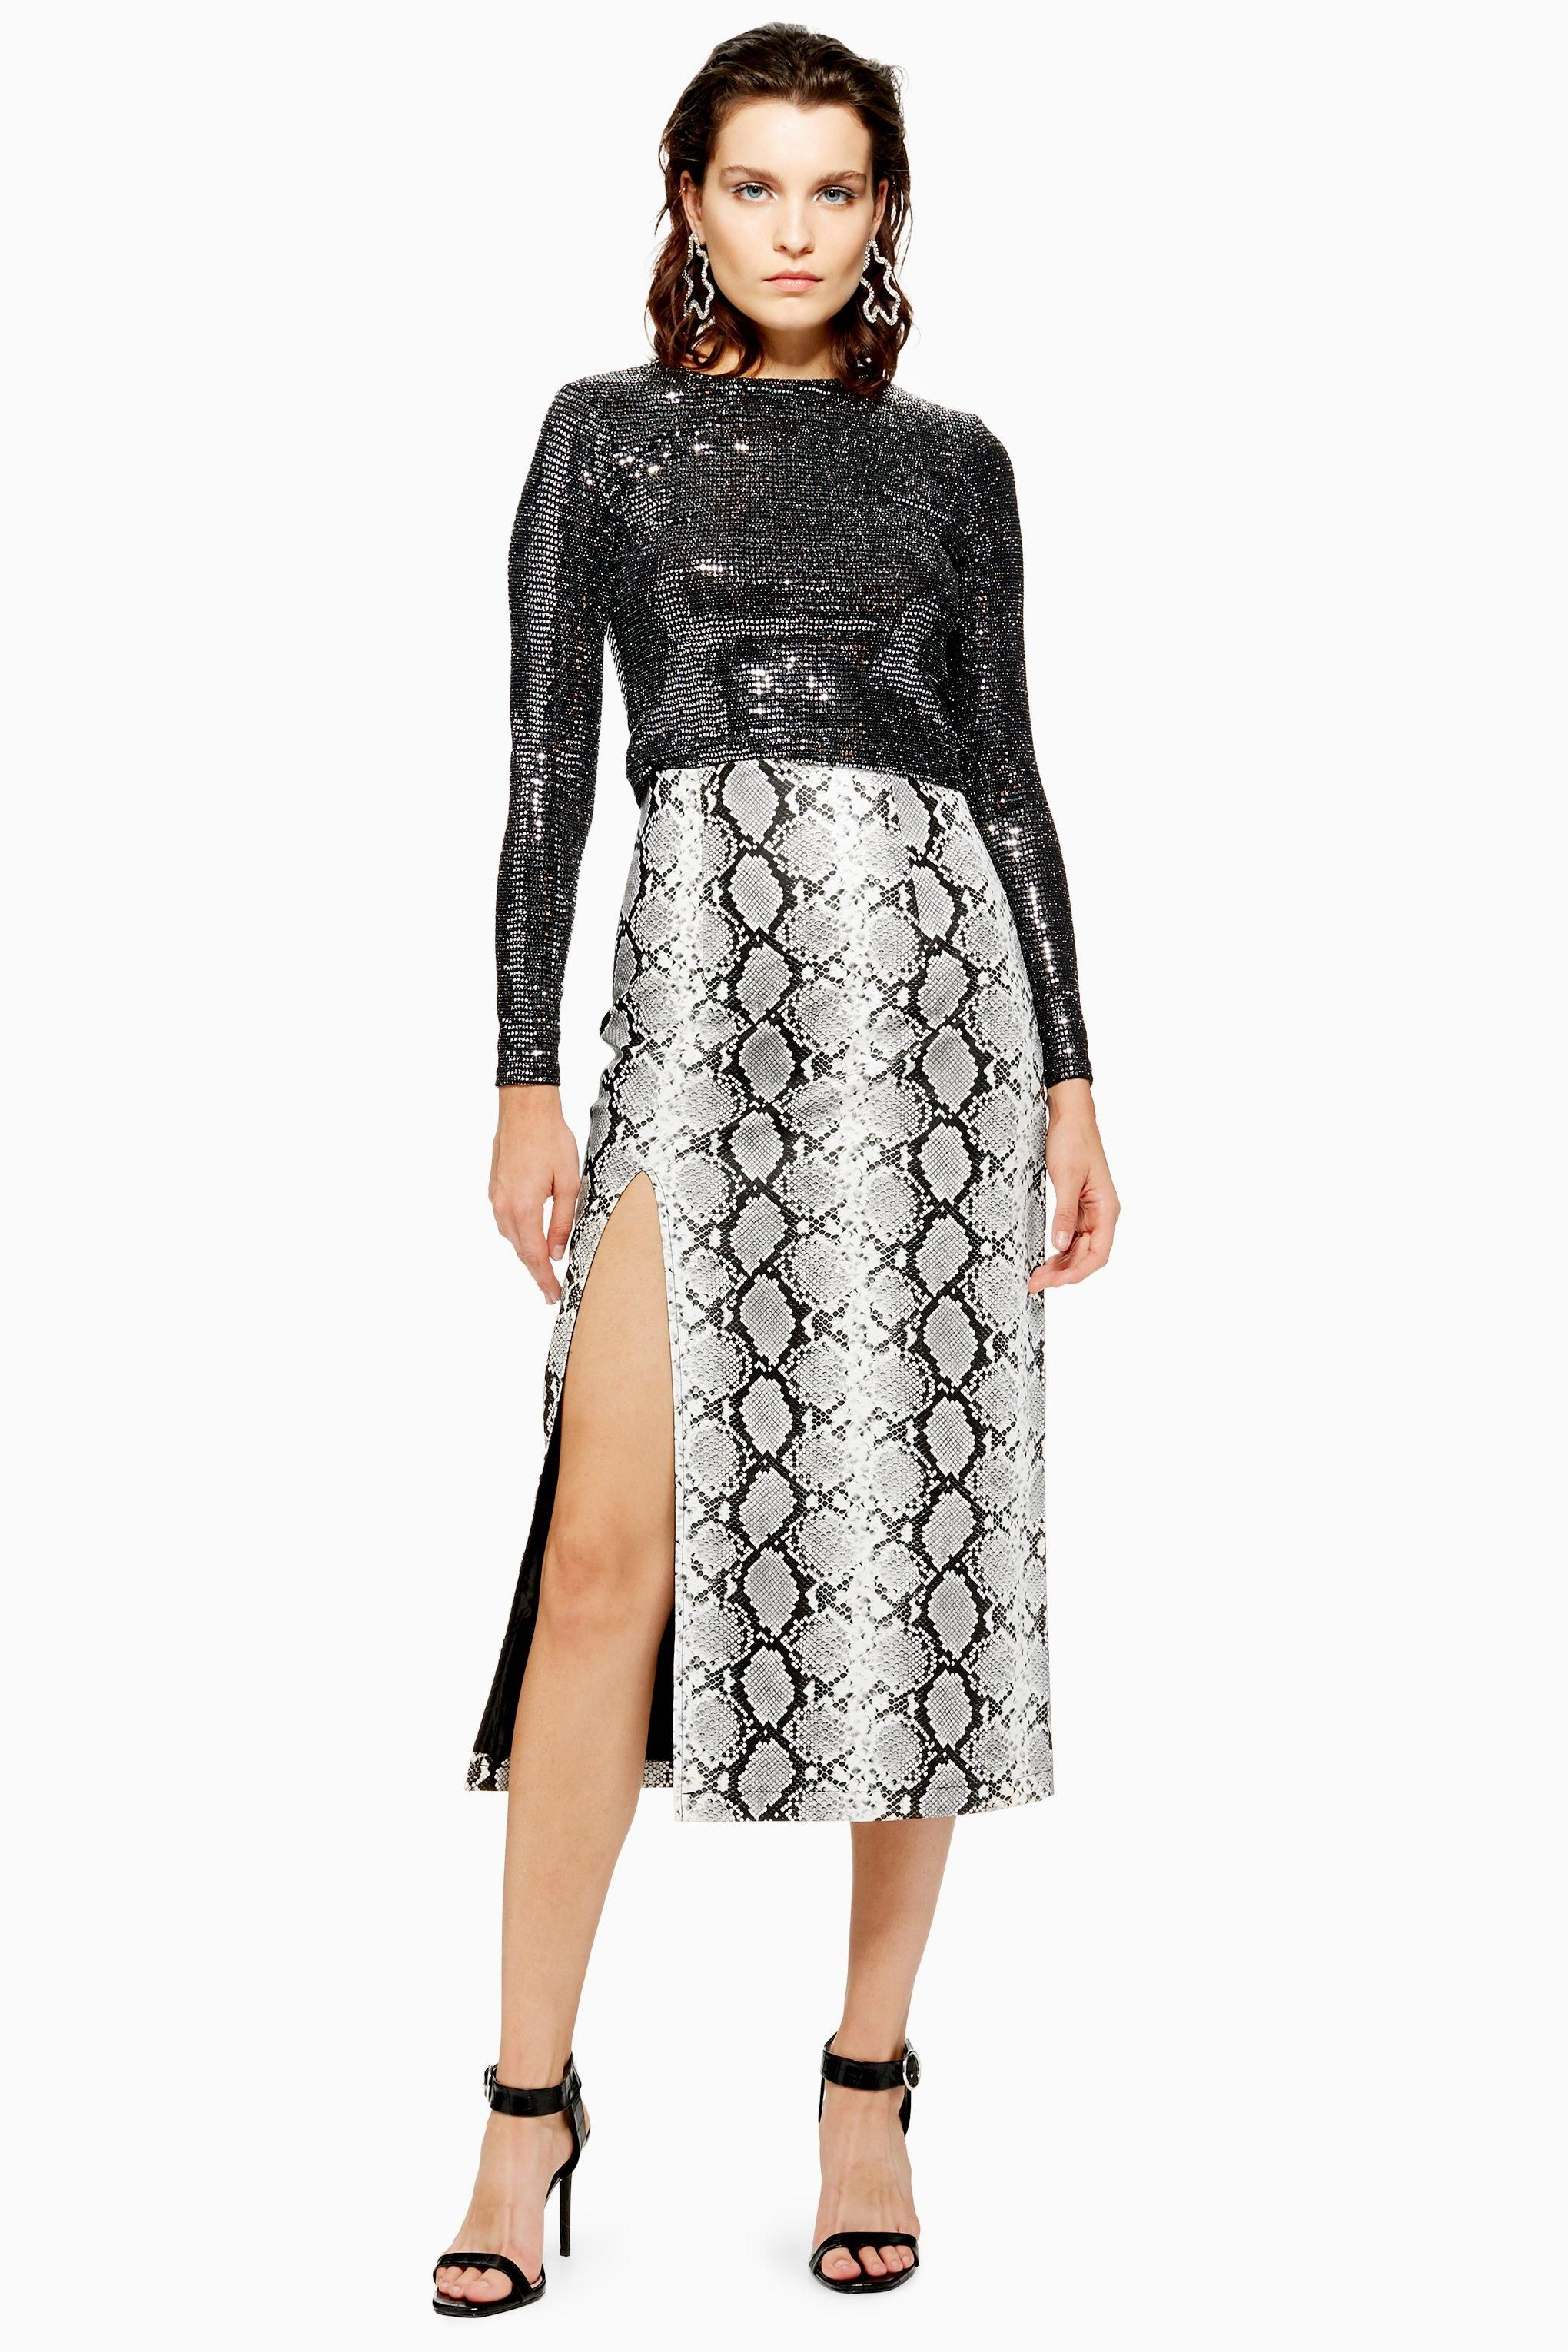 de077b4c253663 Snake Print Leather Look Pencil Skirt | Pencil Skirts | Printed ...